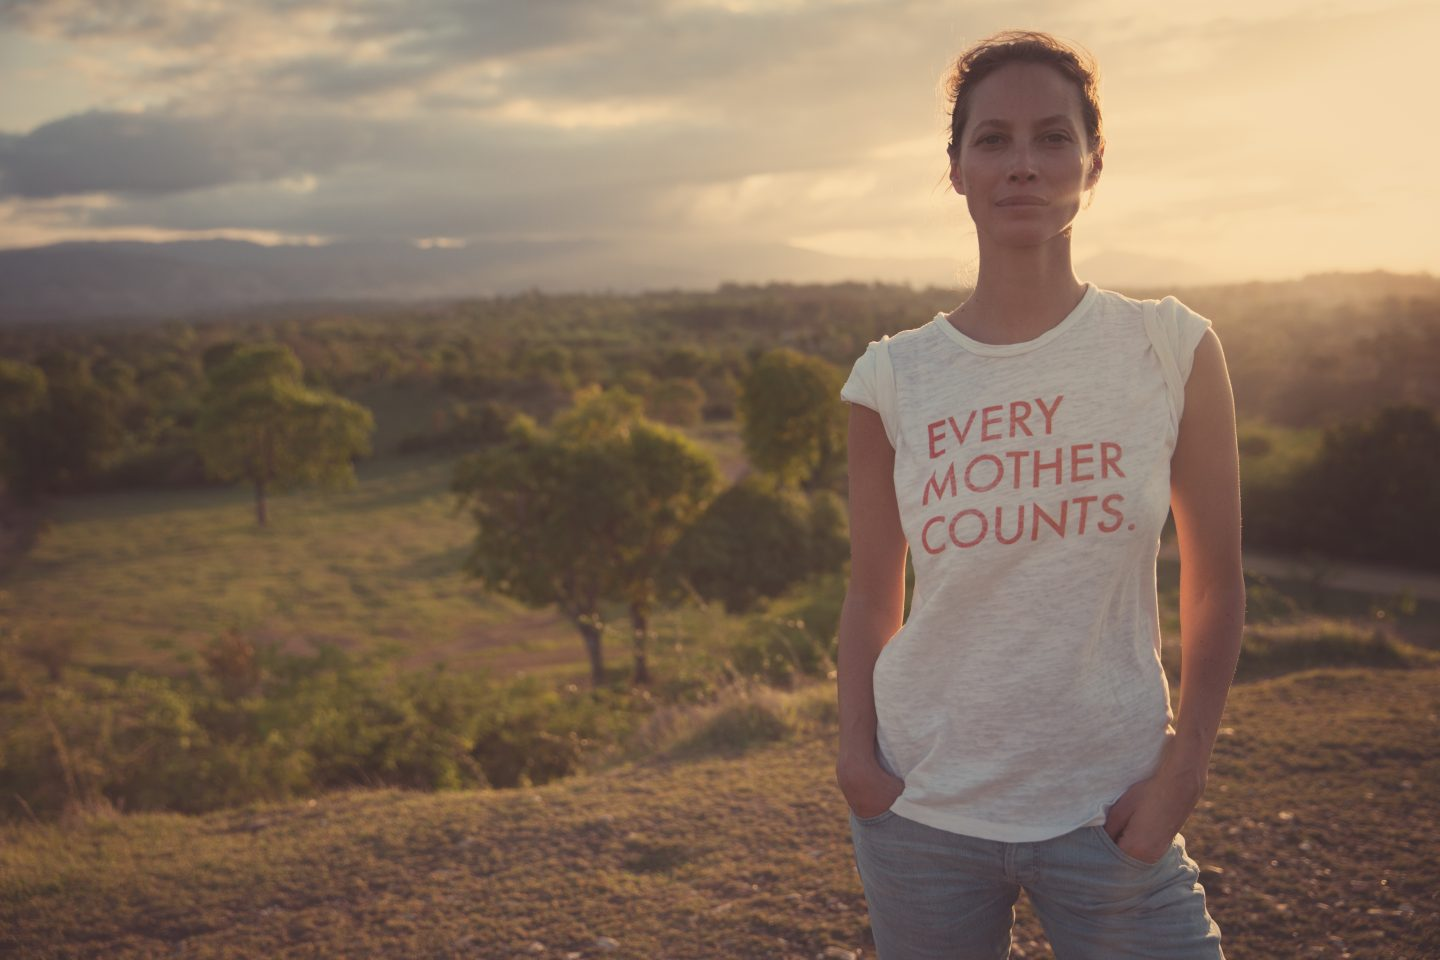 Interview: Christy Turlington Burns, Founder, Every Mother Counts